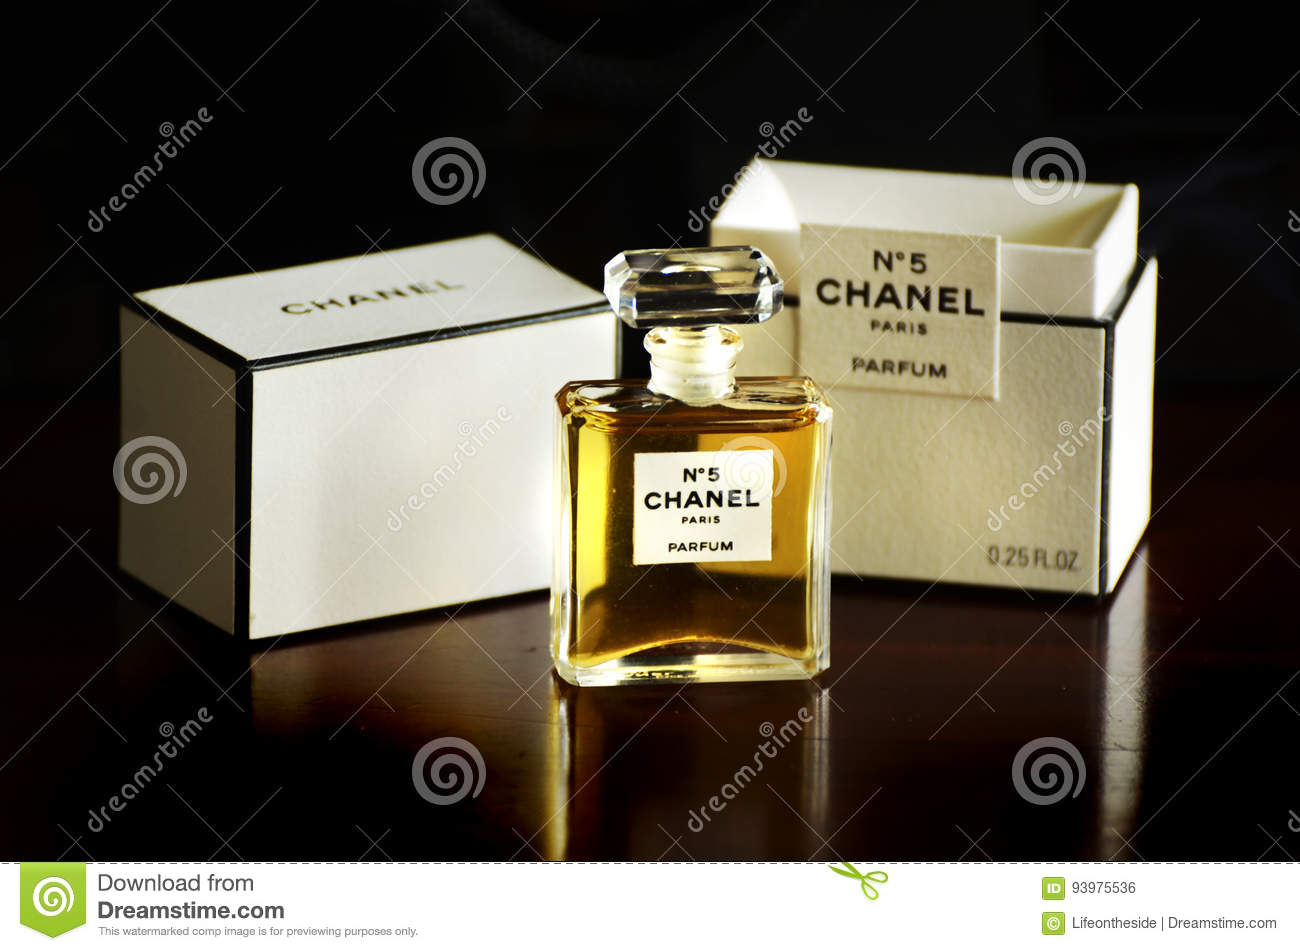 Chanel No 5 french perfume parfum bottle box isolated dark background